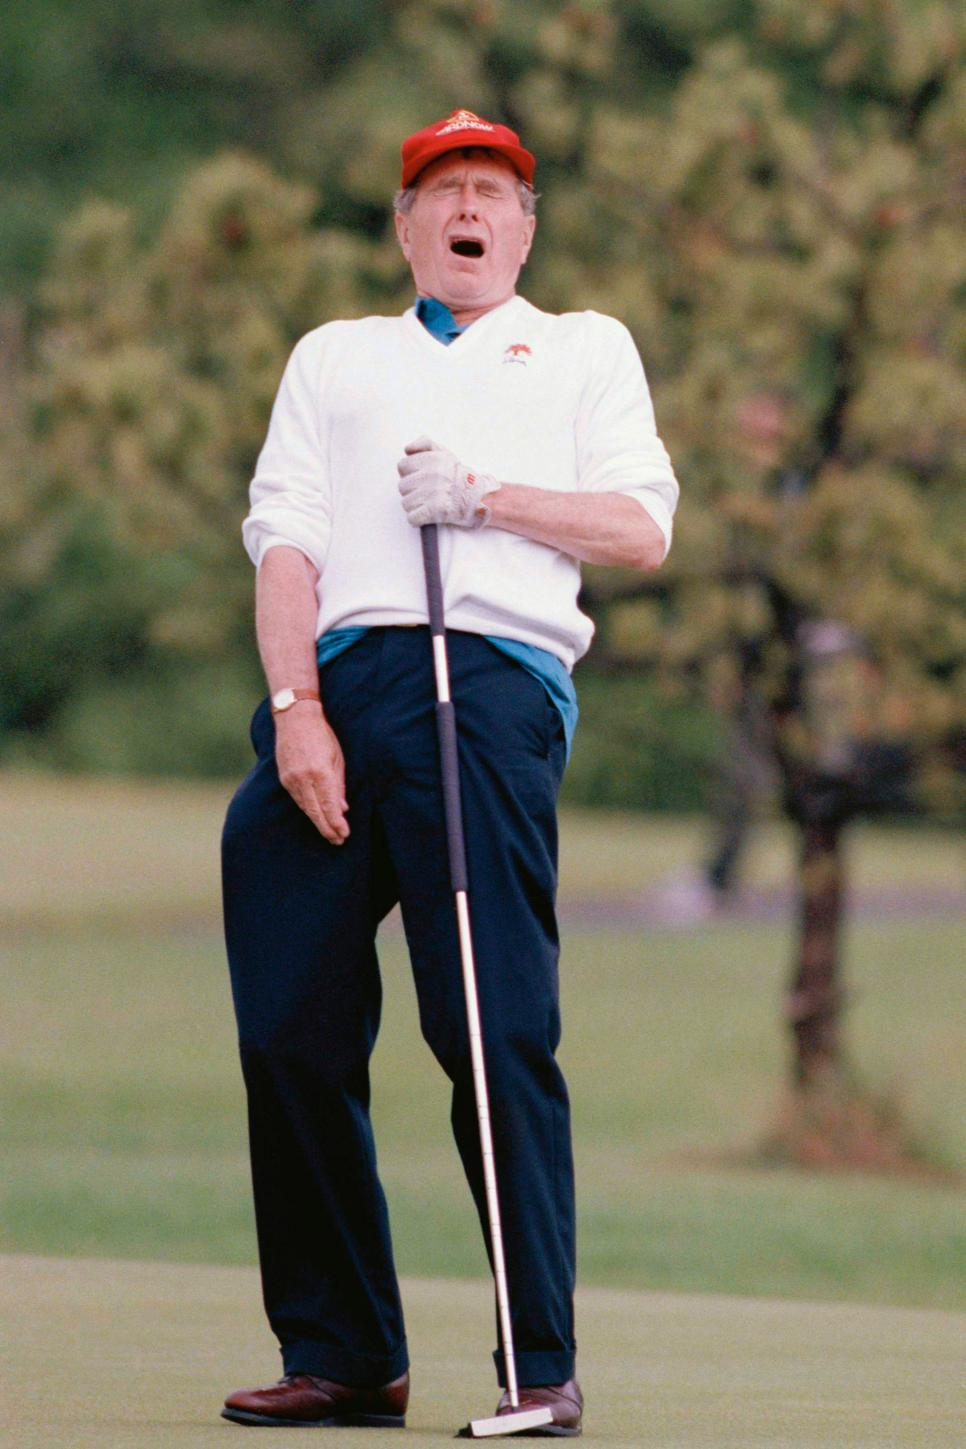 george-hw-bush-reaction-missed-putt.jpg